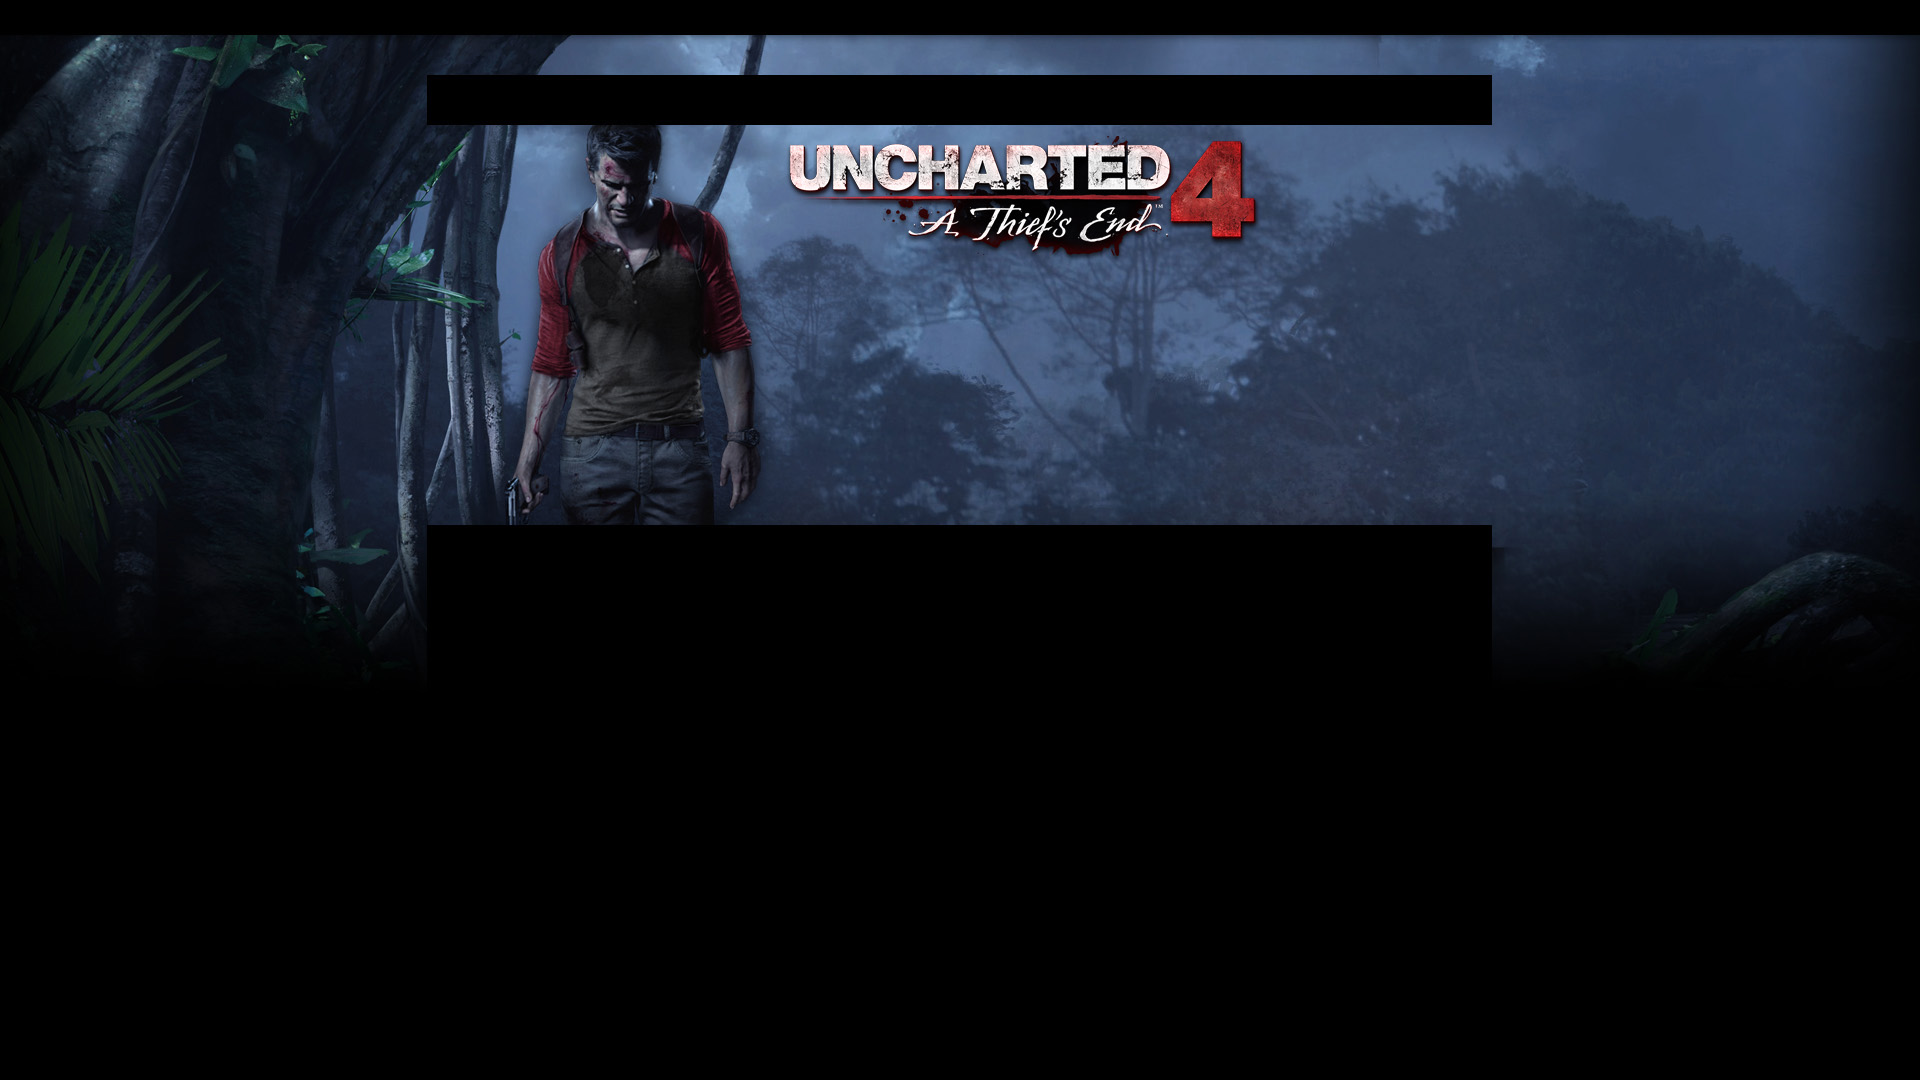 UNCHARTED 4: A THIEF'S END [PS4] video game